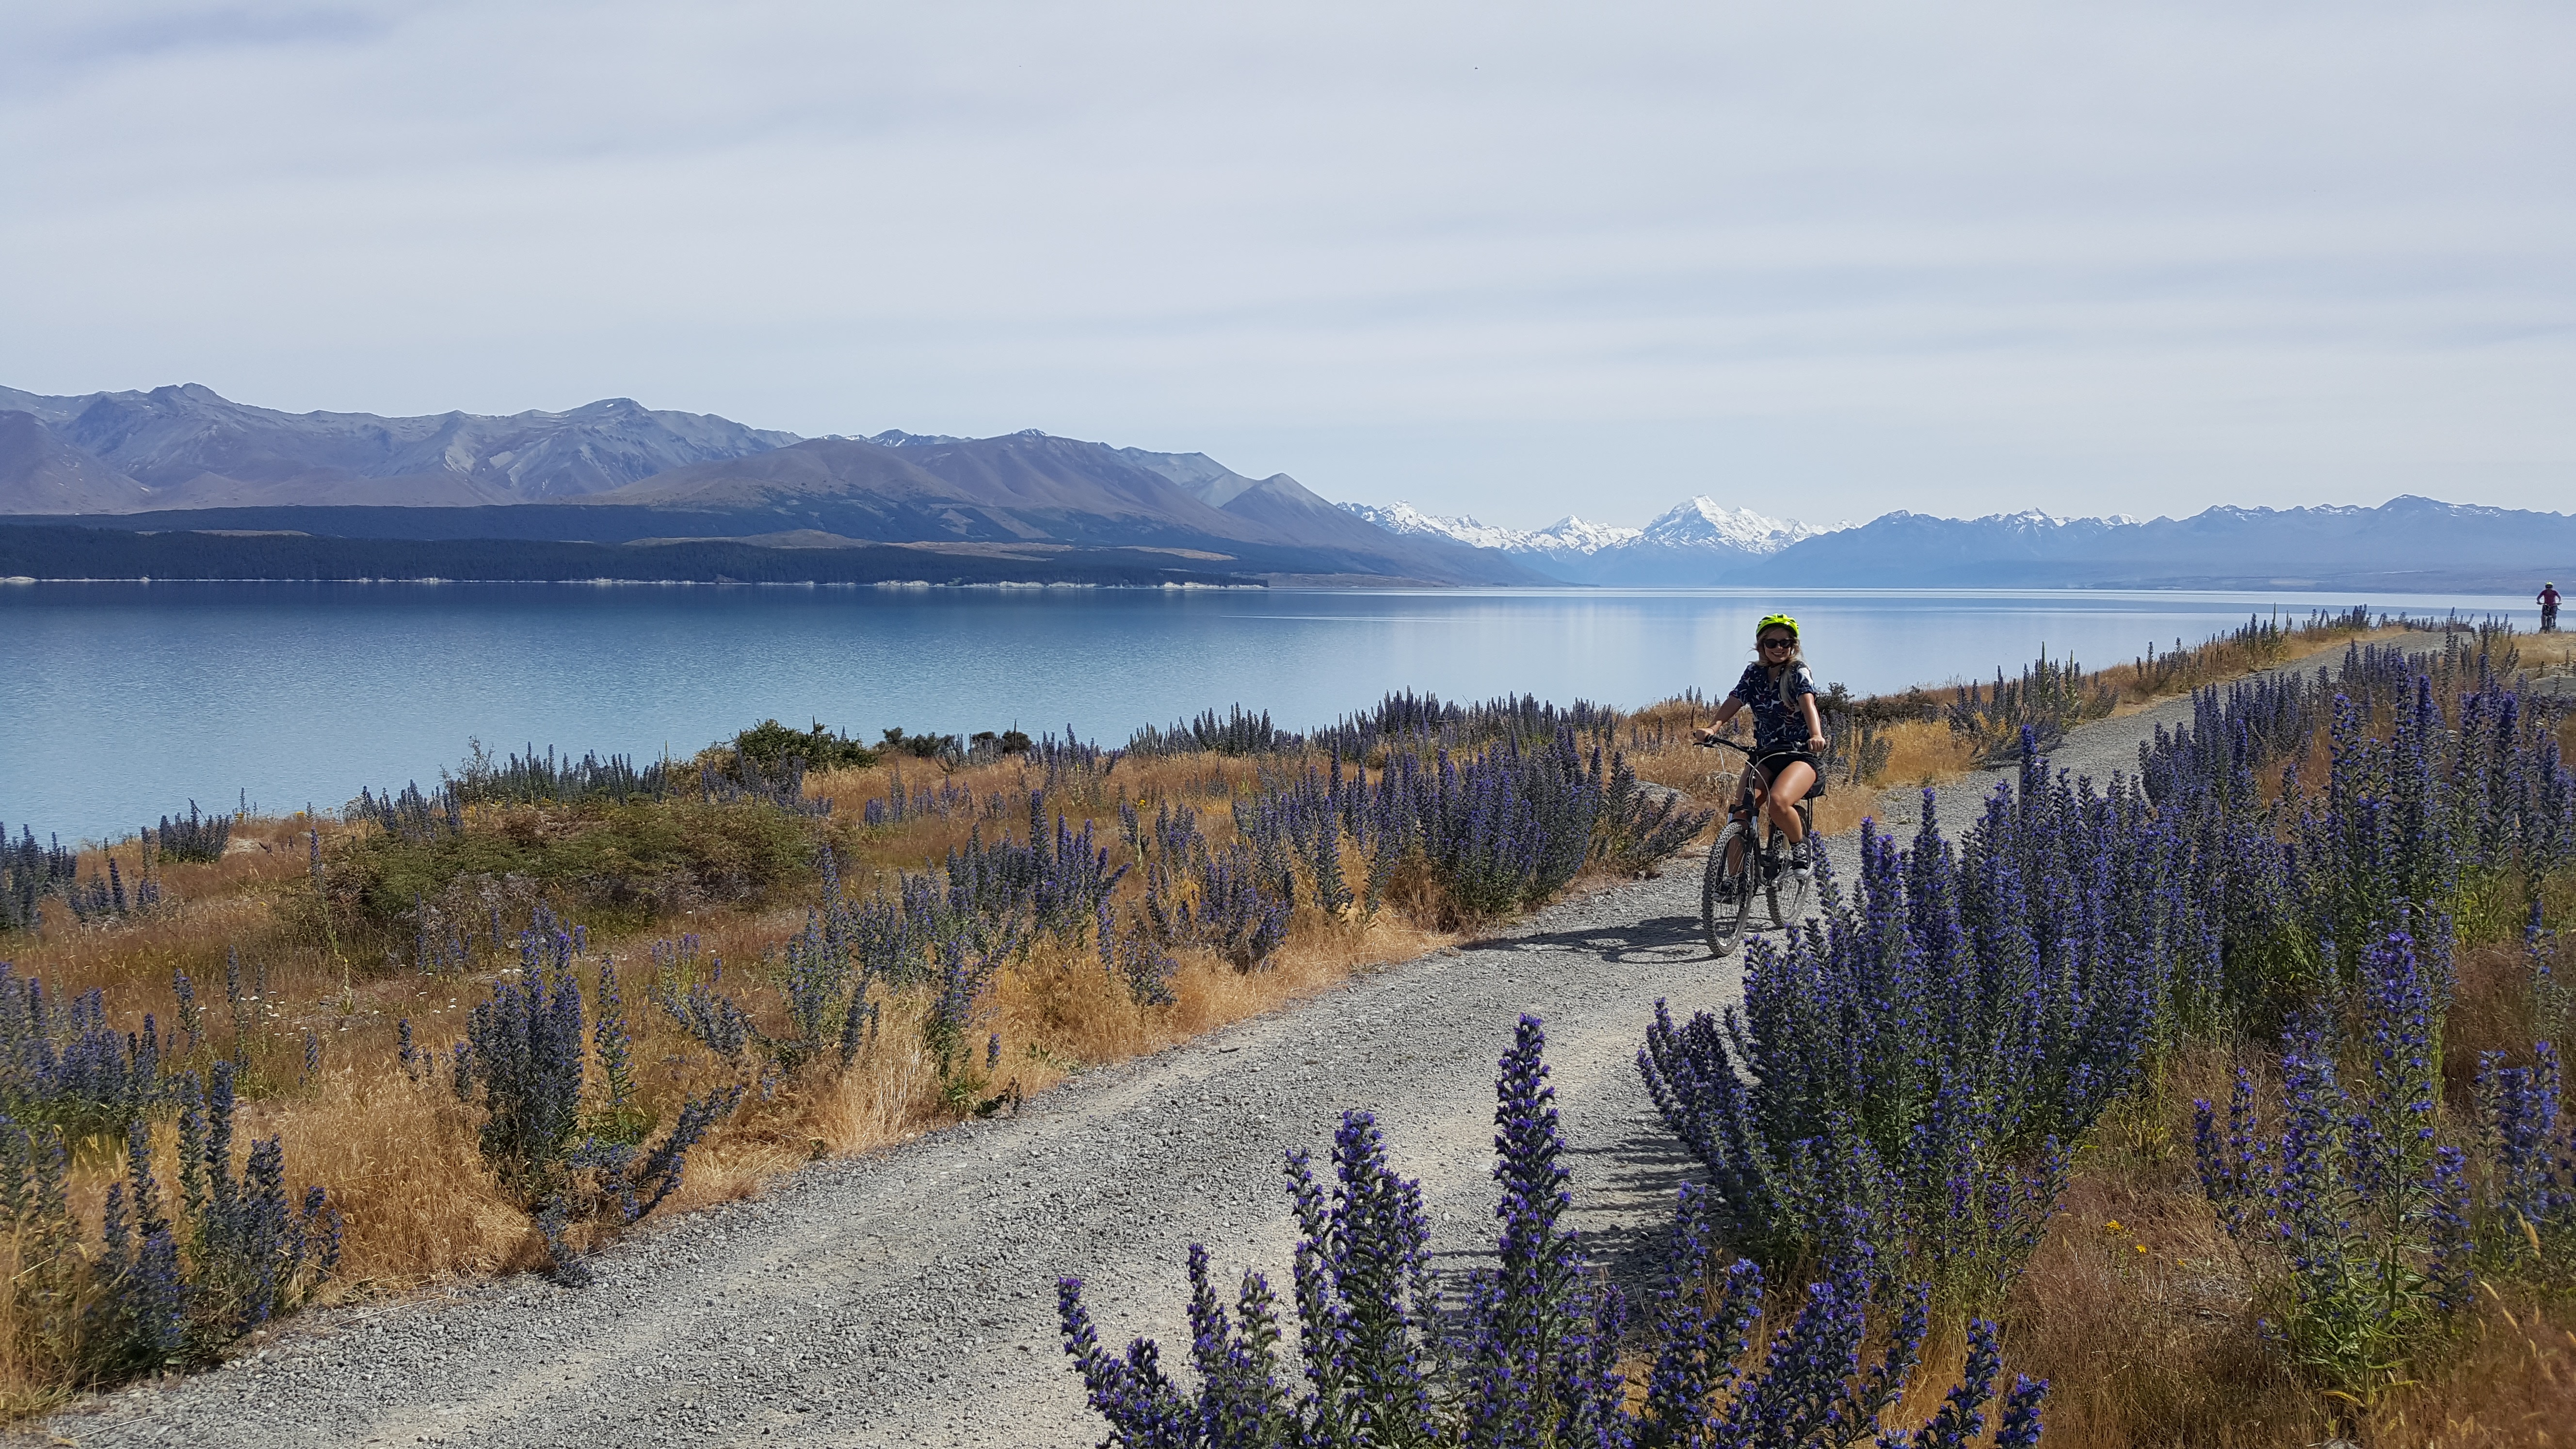 Lakeside Cycling Mountain and Lake Views Relaxing Holiday in a Beautiful location